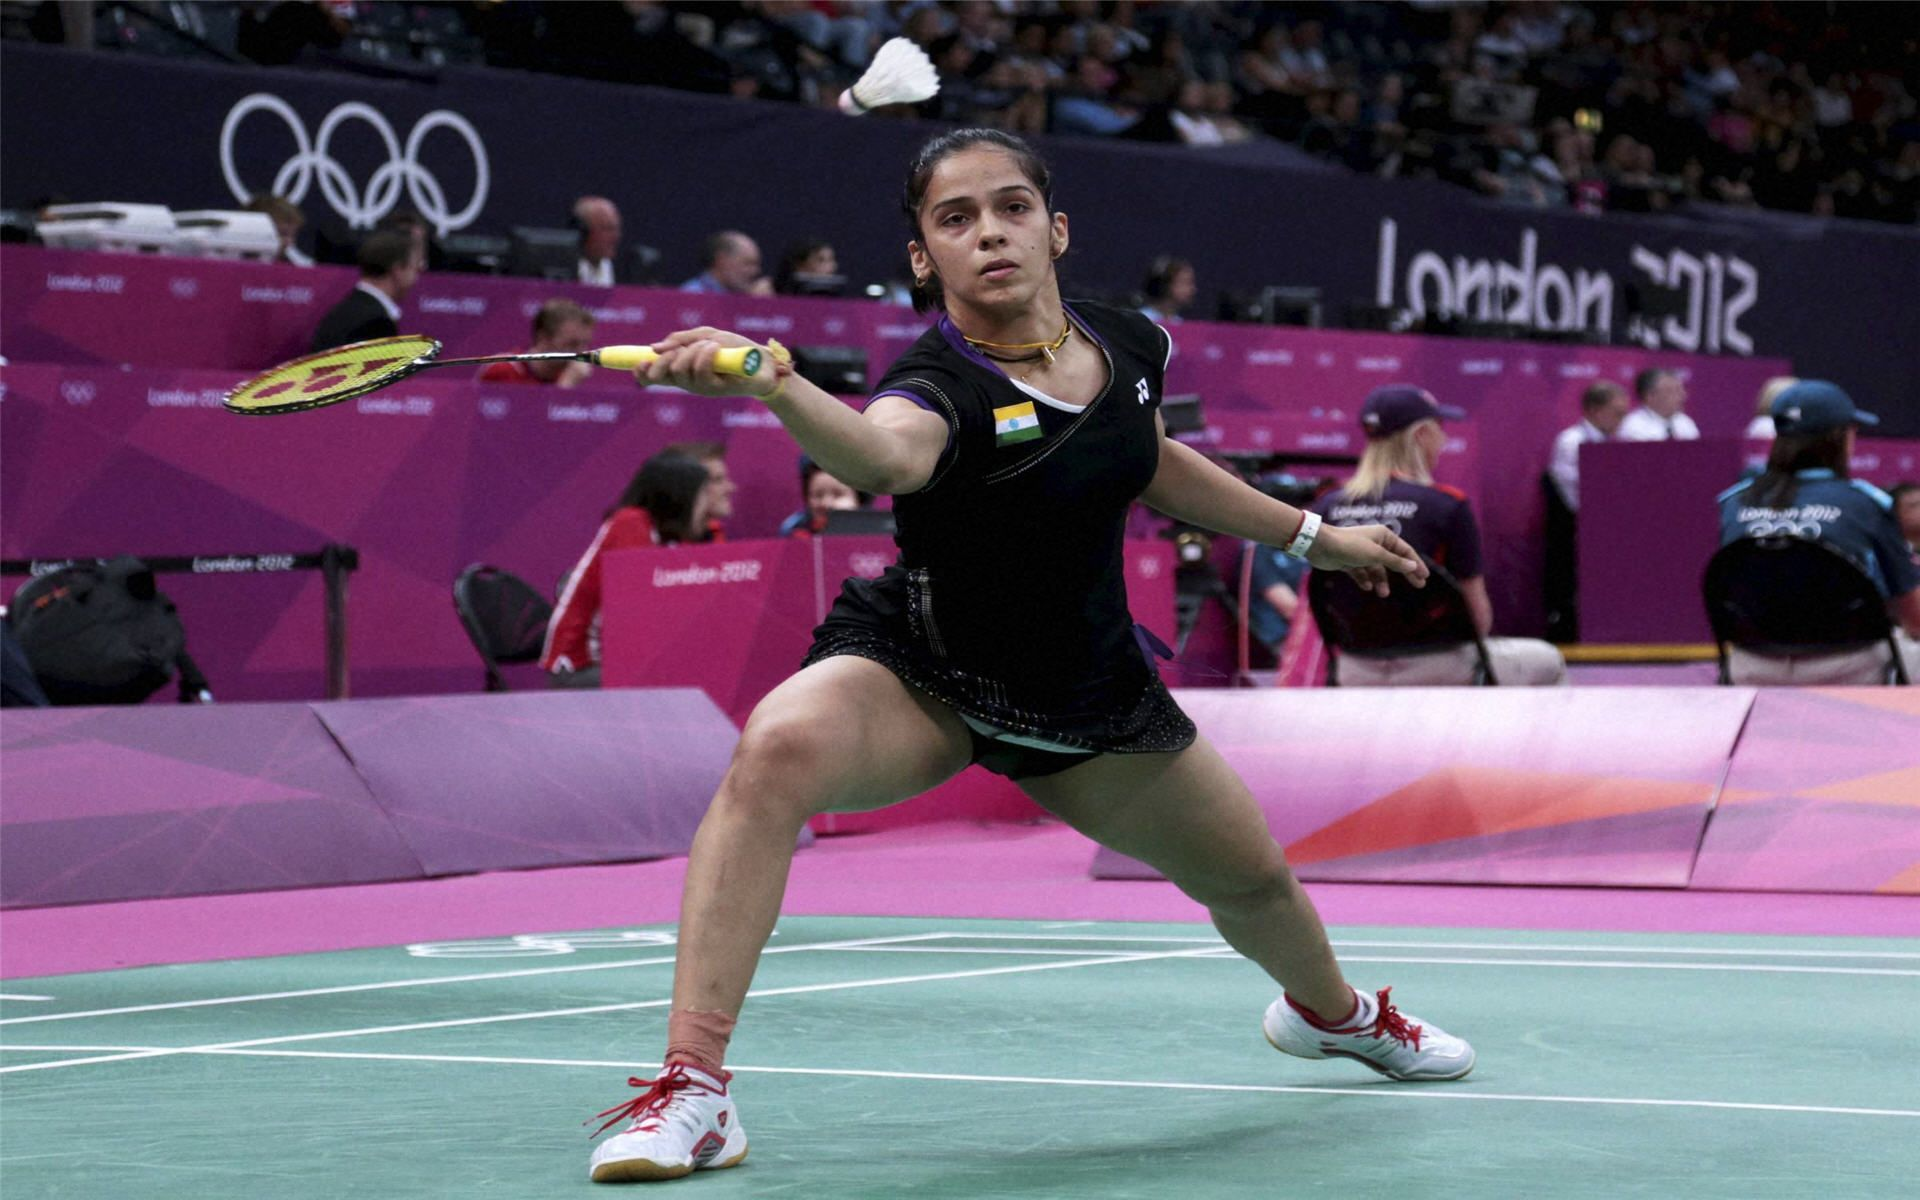 Olympics Badminton Picture Badminton pictures, Olympic